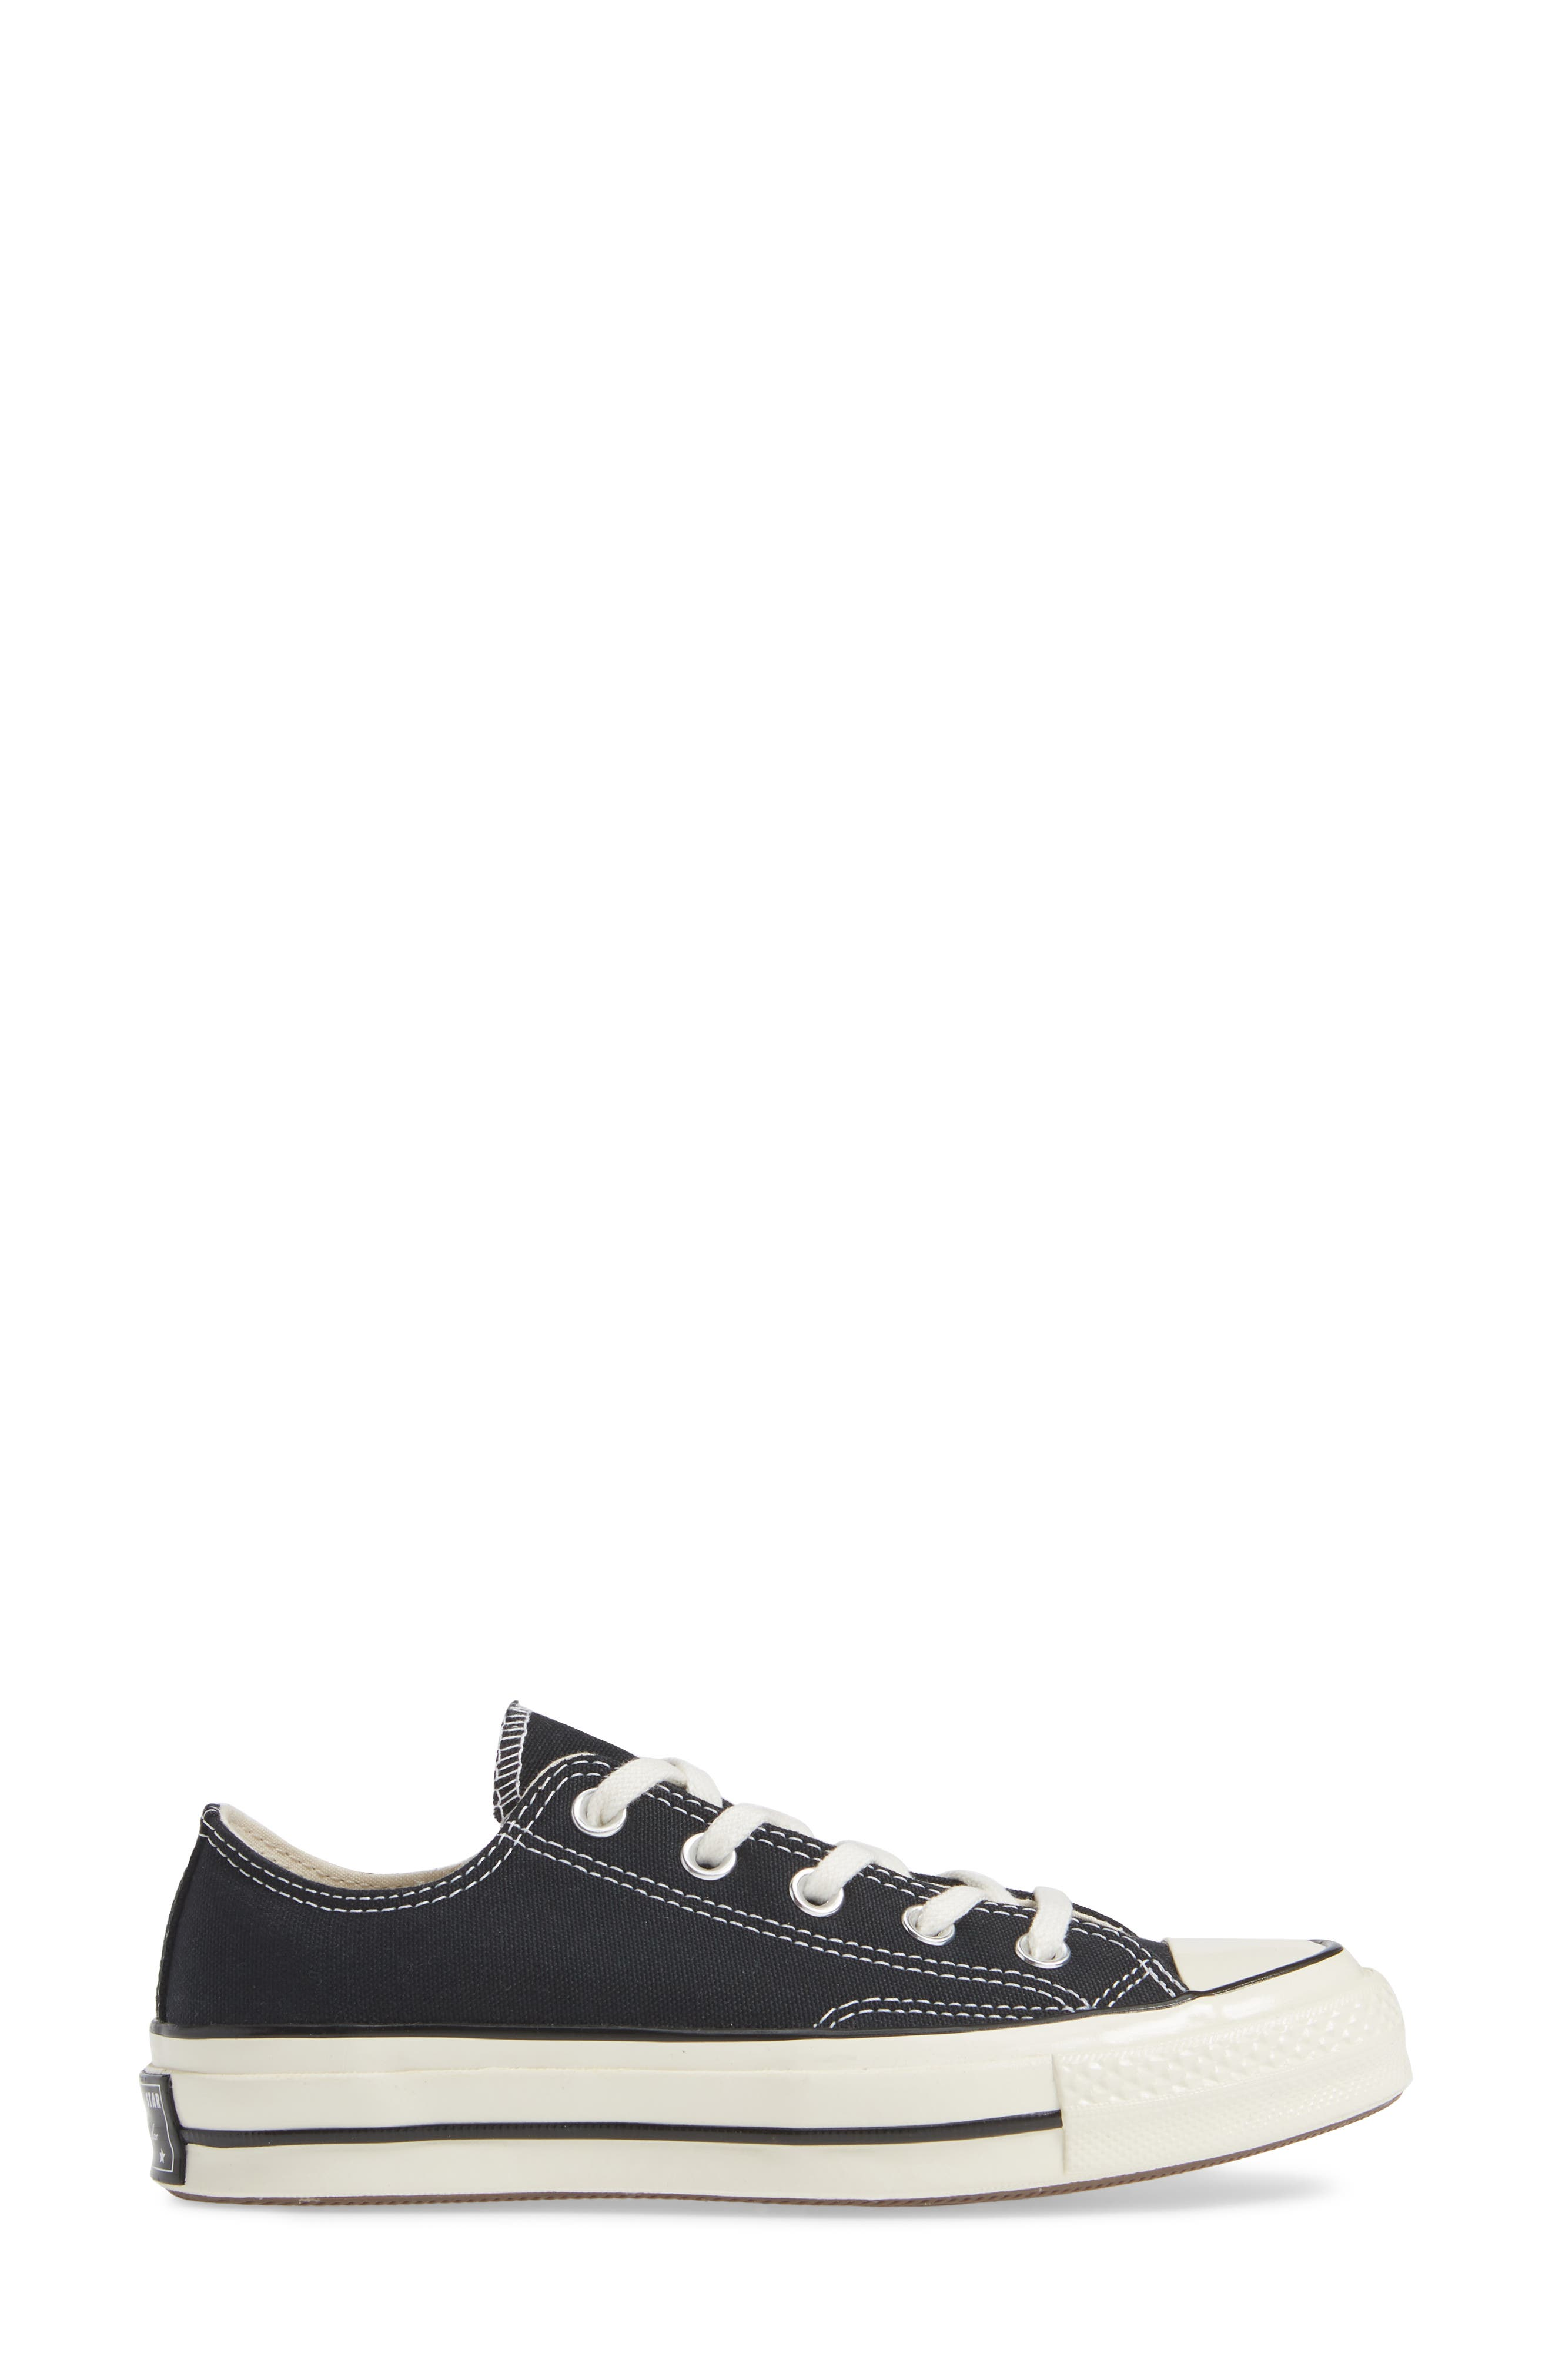 CONVERSE, Chuck Taylor<sup>®</sup> All Star<sup>®</sup> Chuck 70 Ox Sneaker, Alternate thumbnail 3, color, BLACK/ BLACK/ EGRET